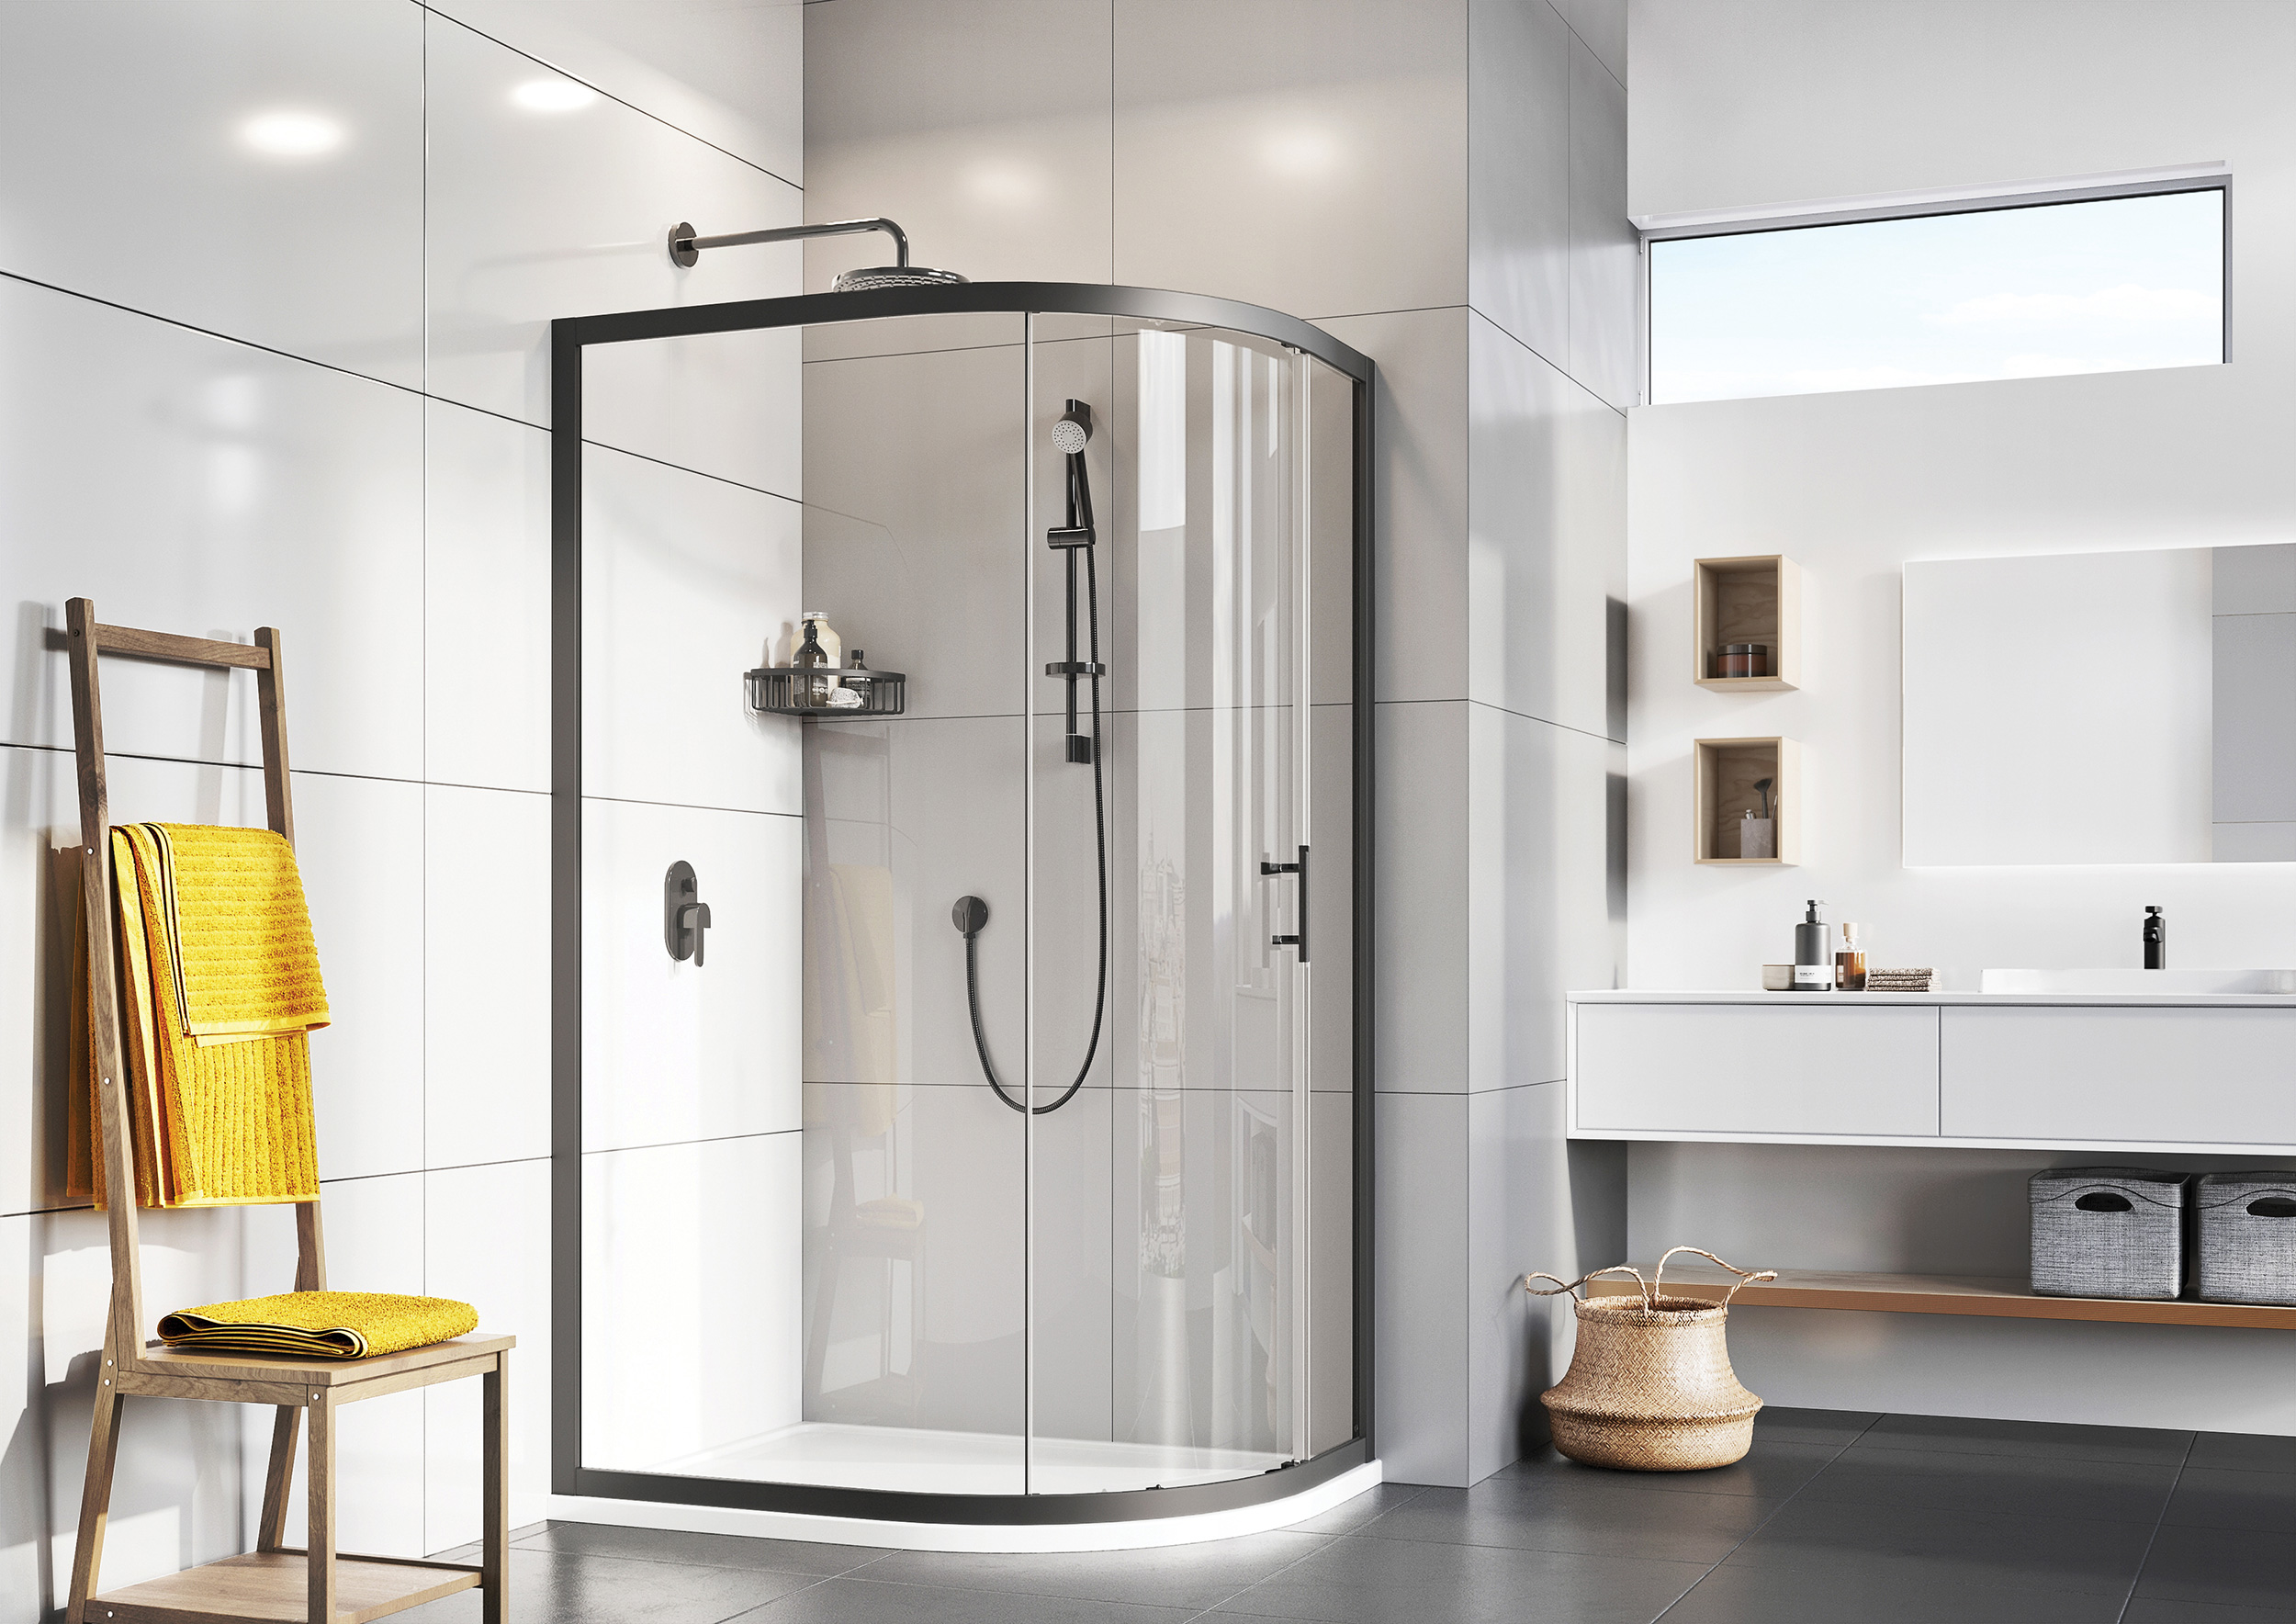 Easy installation with Roman's Fast Fix shower enclosure assembly